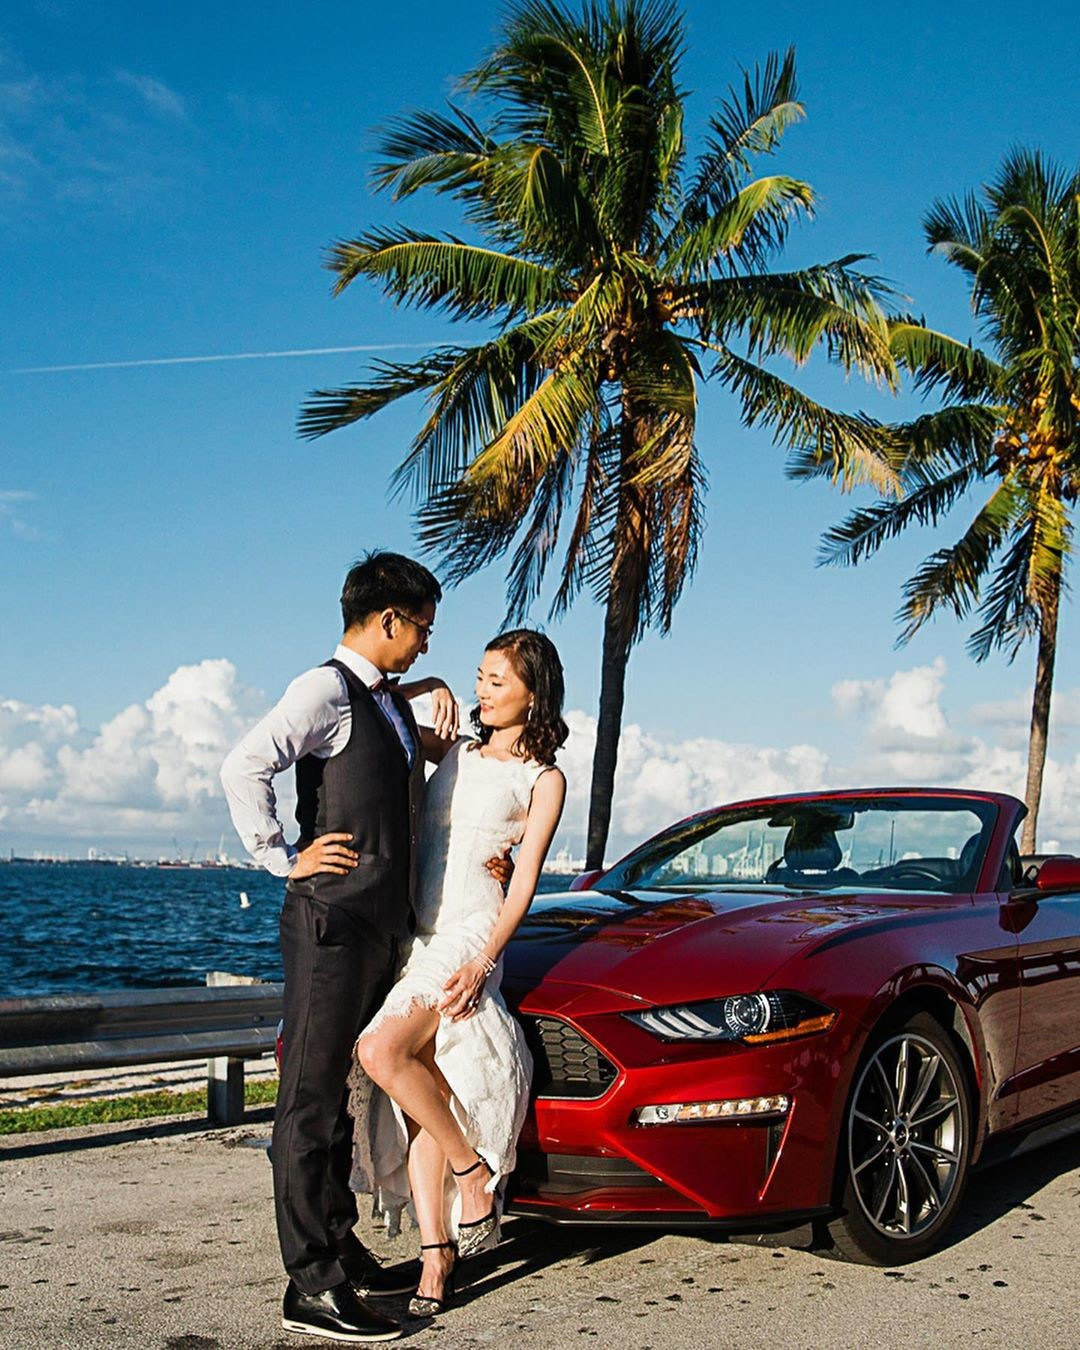 When you get a couple from China to Miami for their engagement pictures, and you have 6 hours for that shoot! At least Chinese people